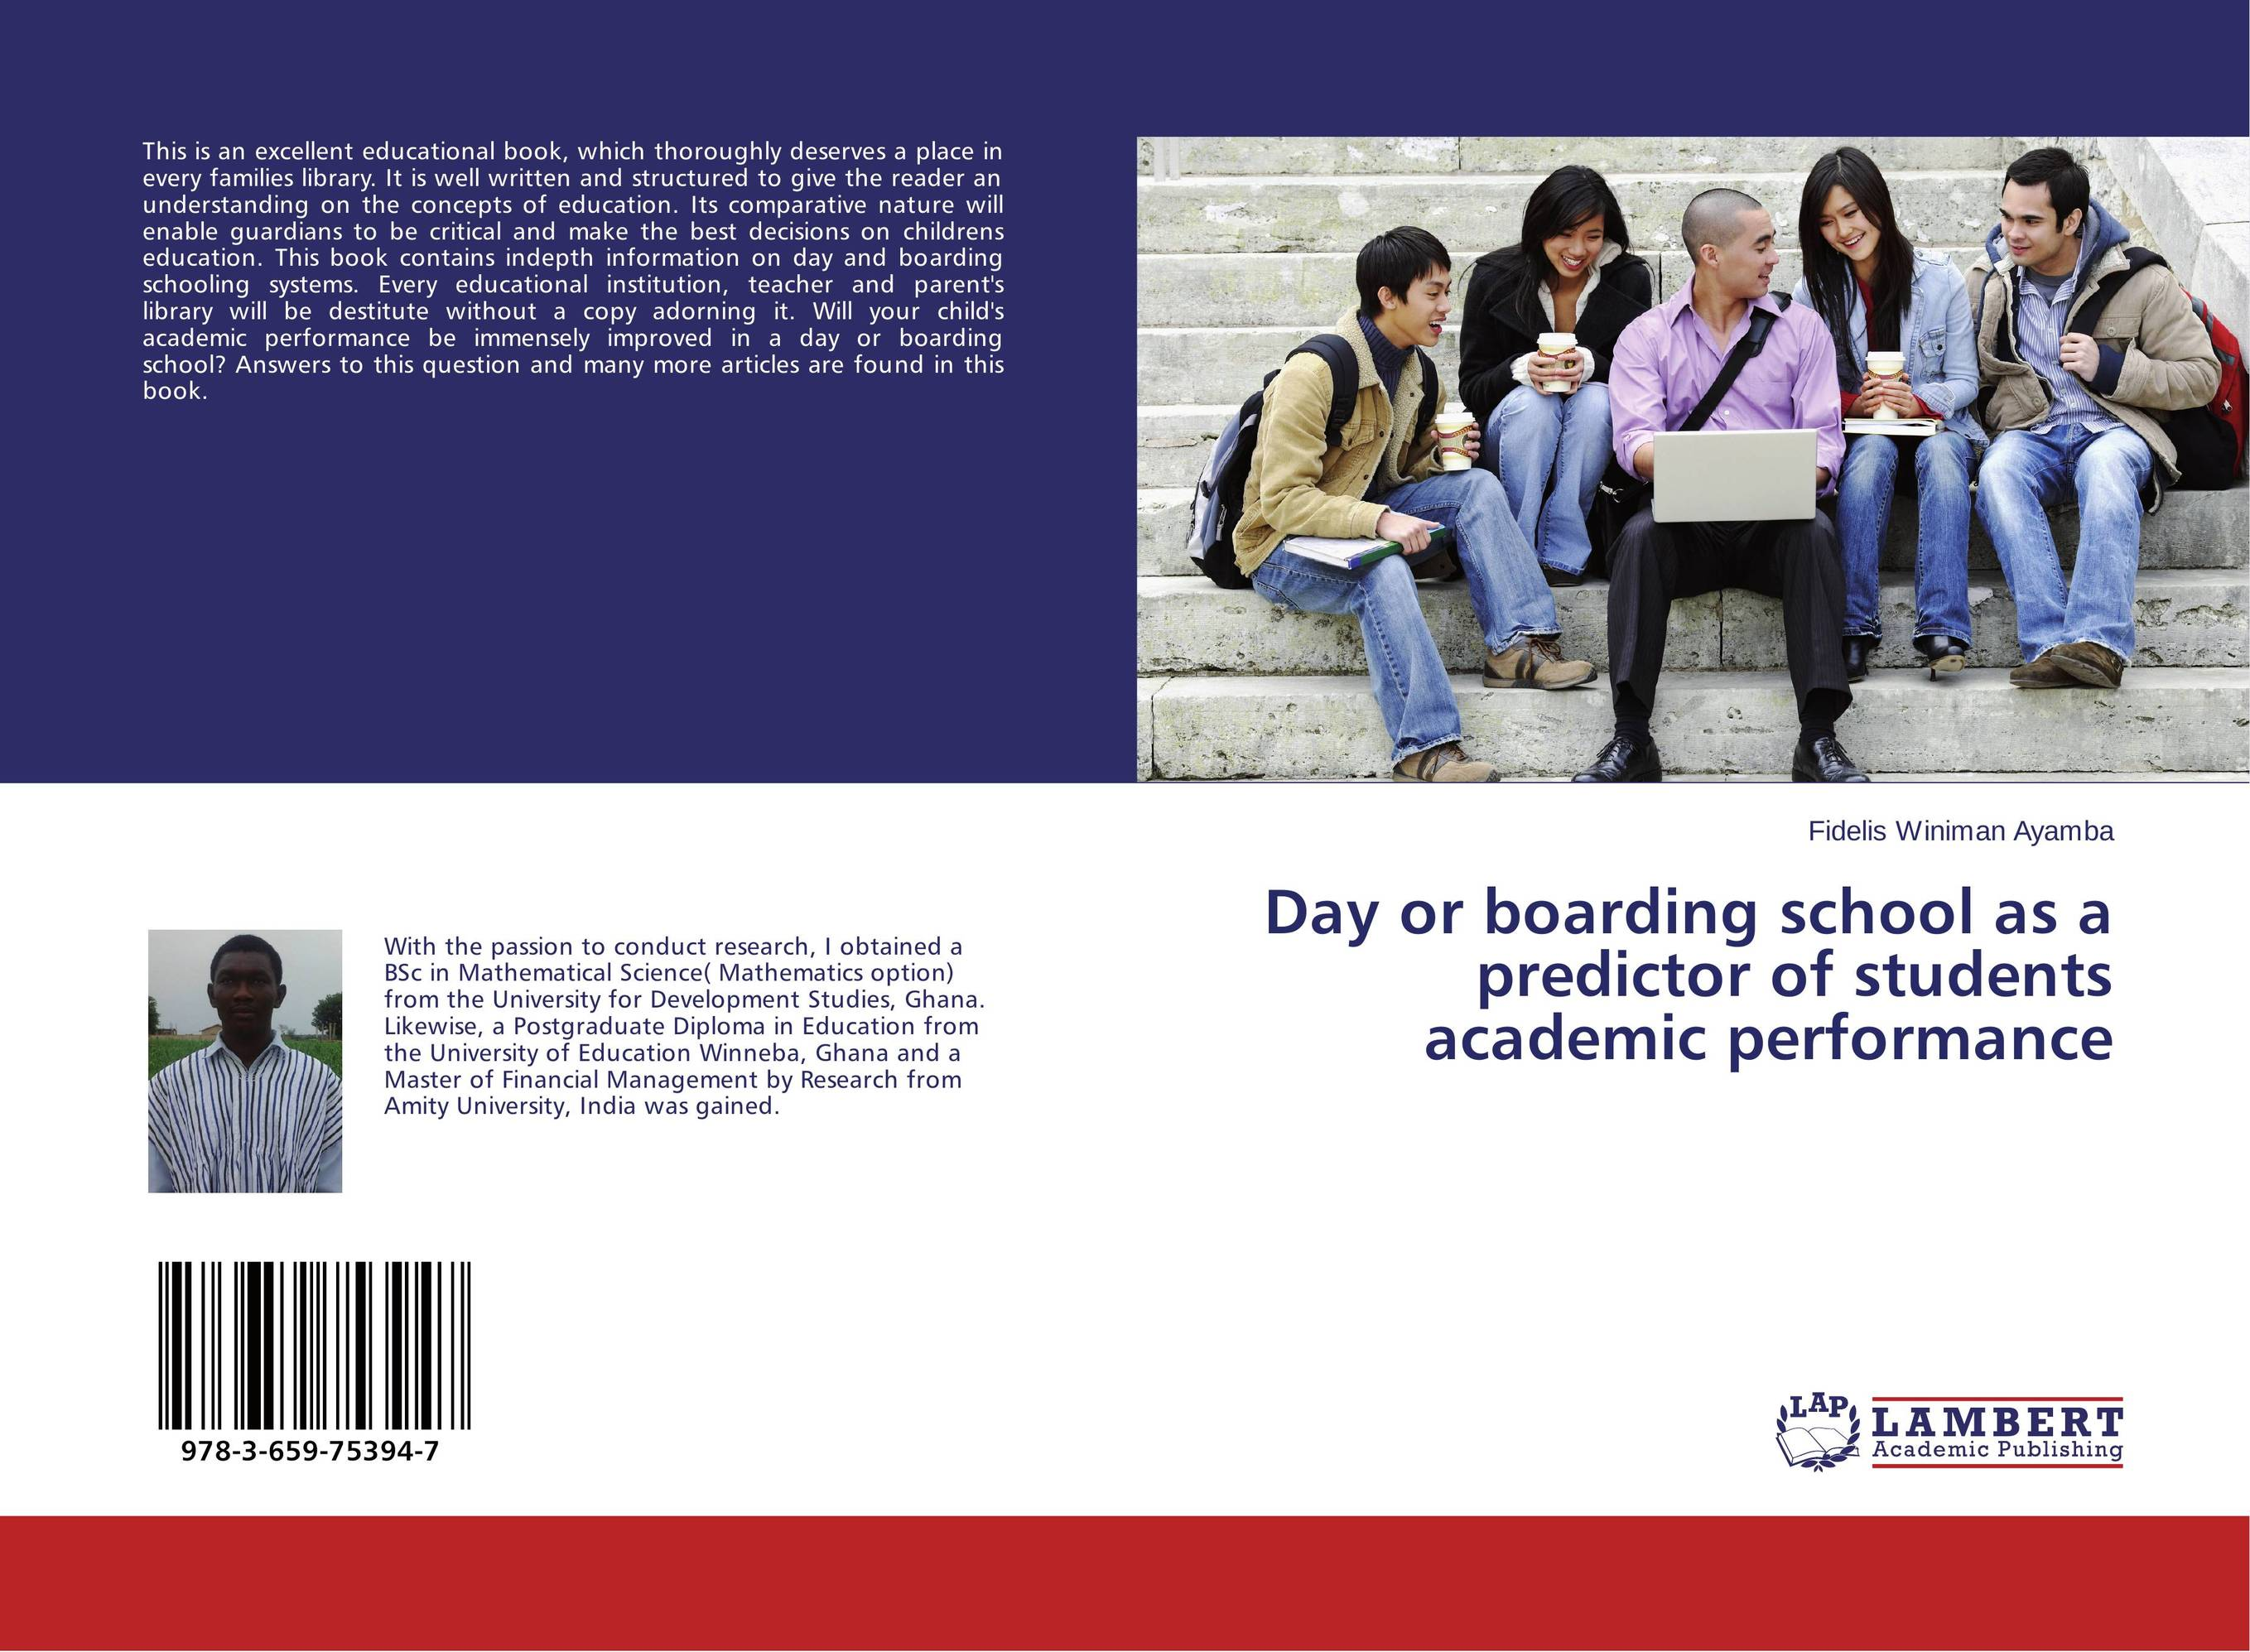 Day or boarding school as a predictor of students academic performance